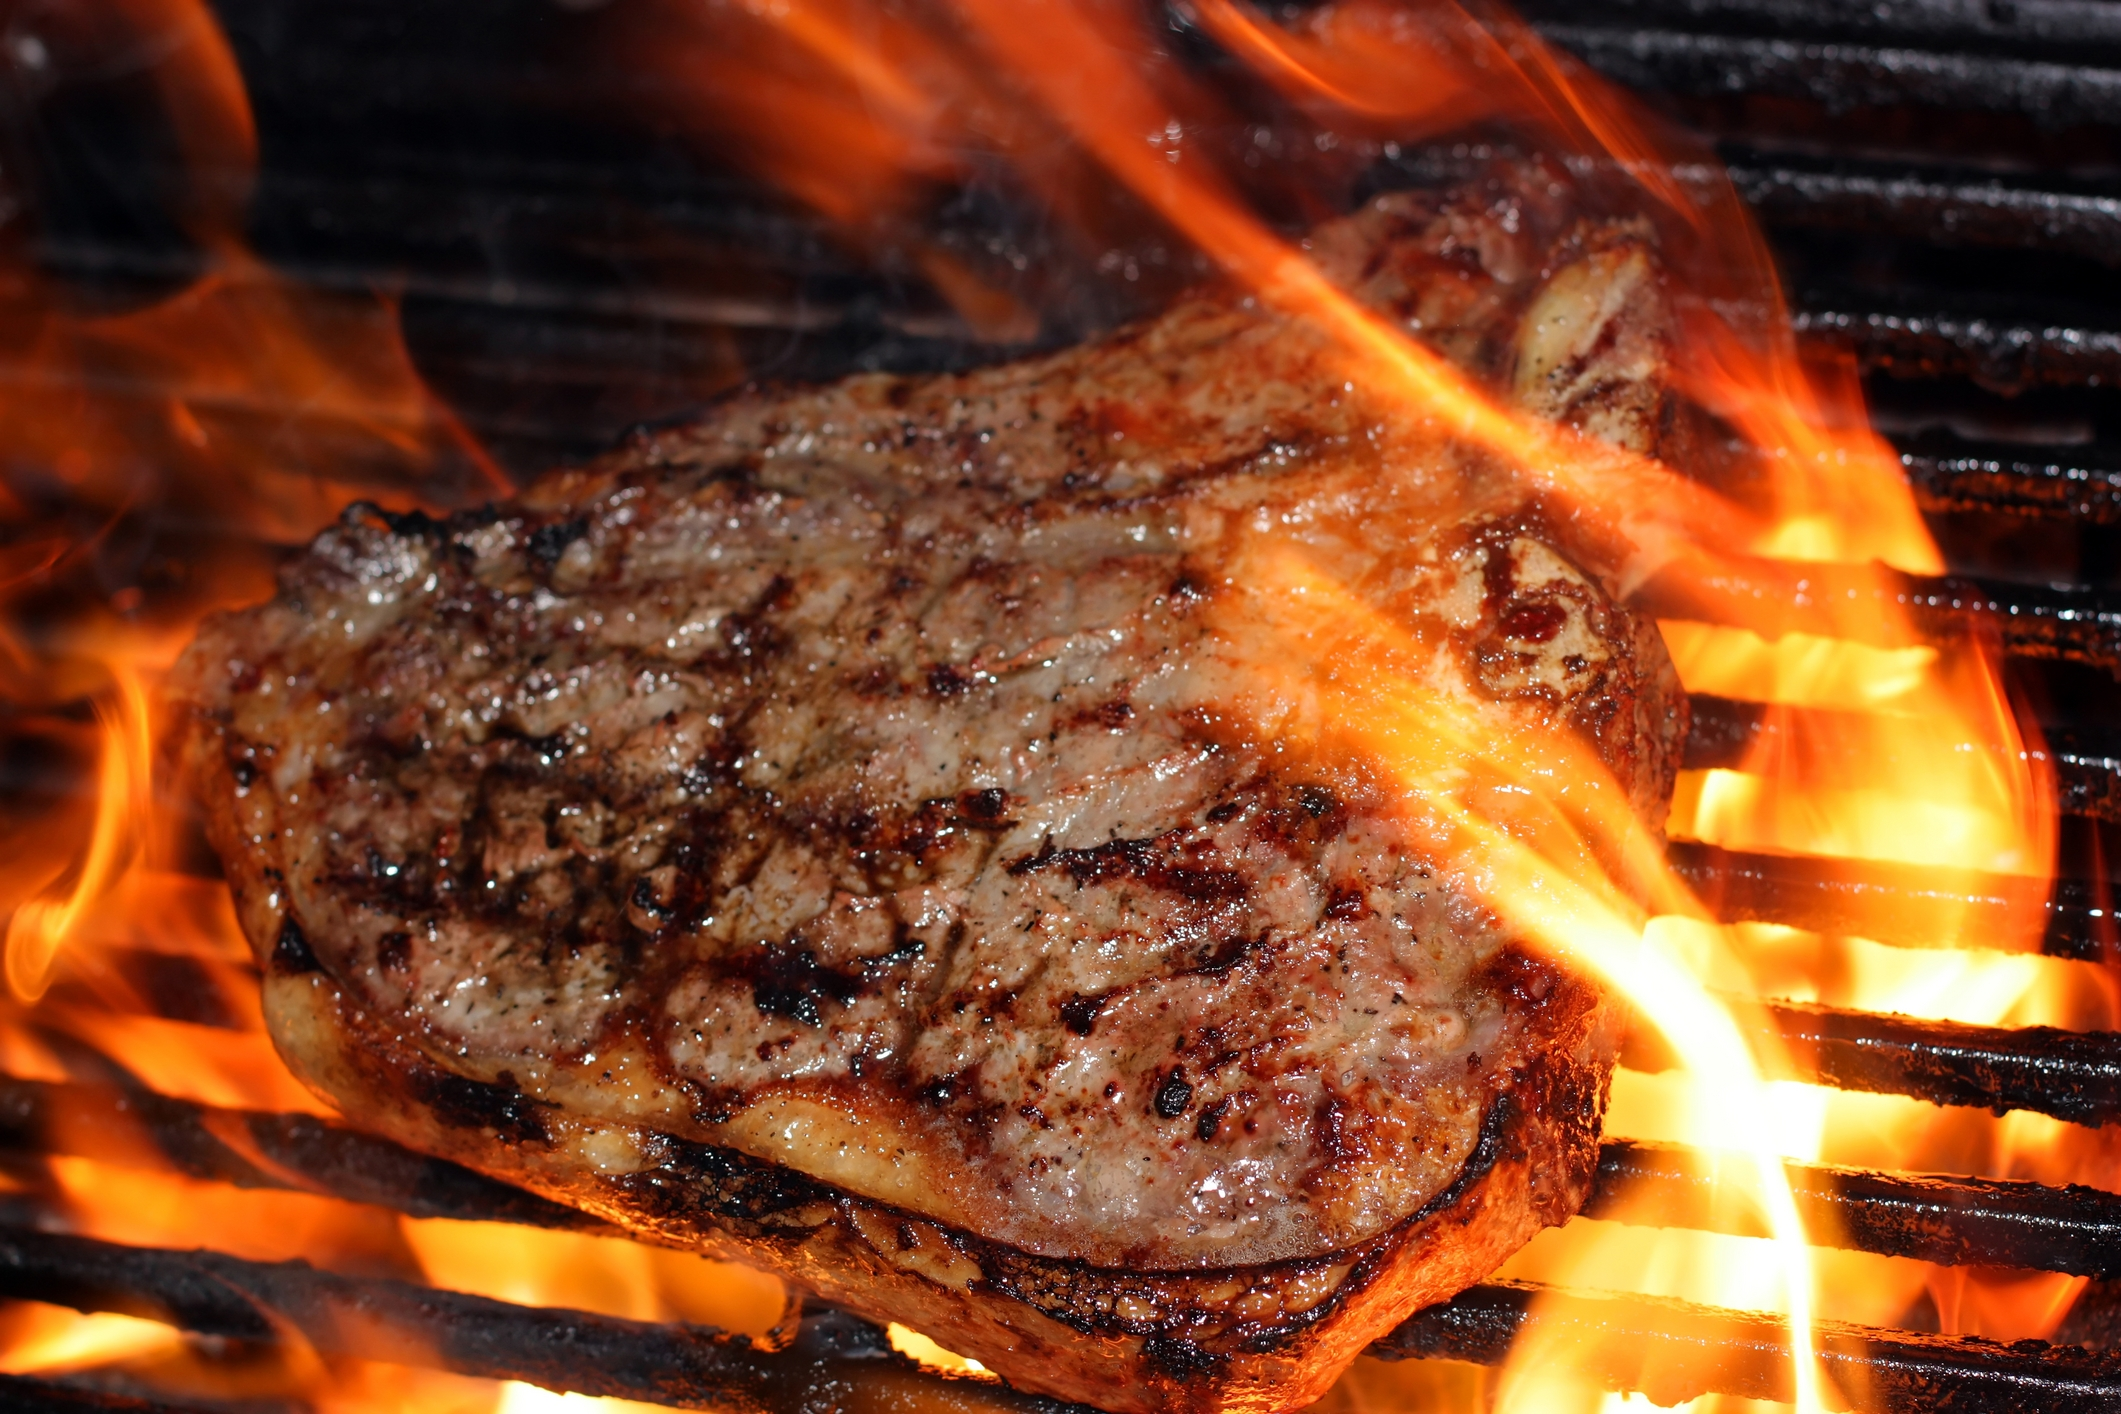 Annual Reports and Steaks!